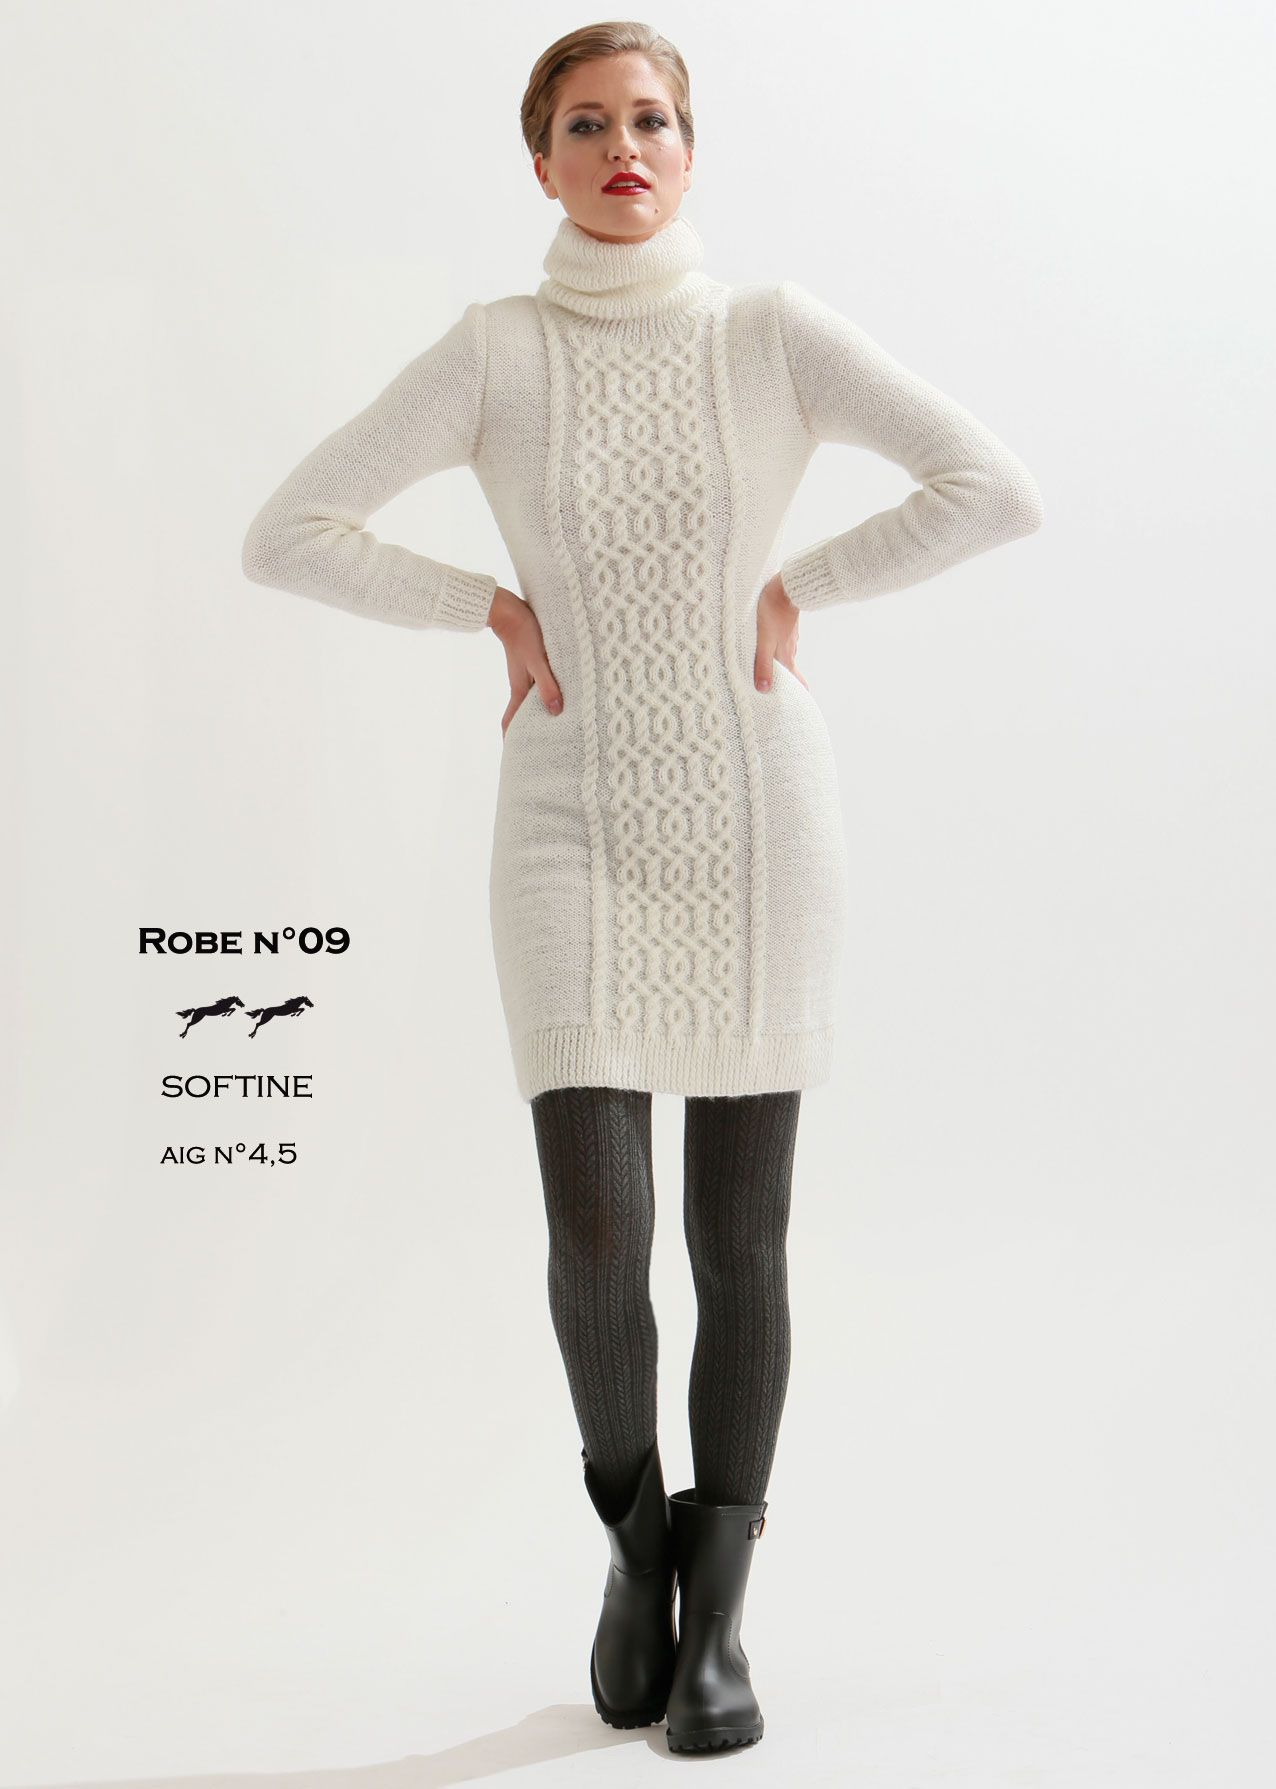 modele de tricot robe femme catalogue cheval blanc n With robe tricot femme